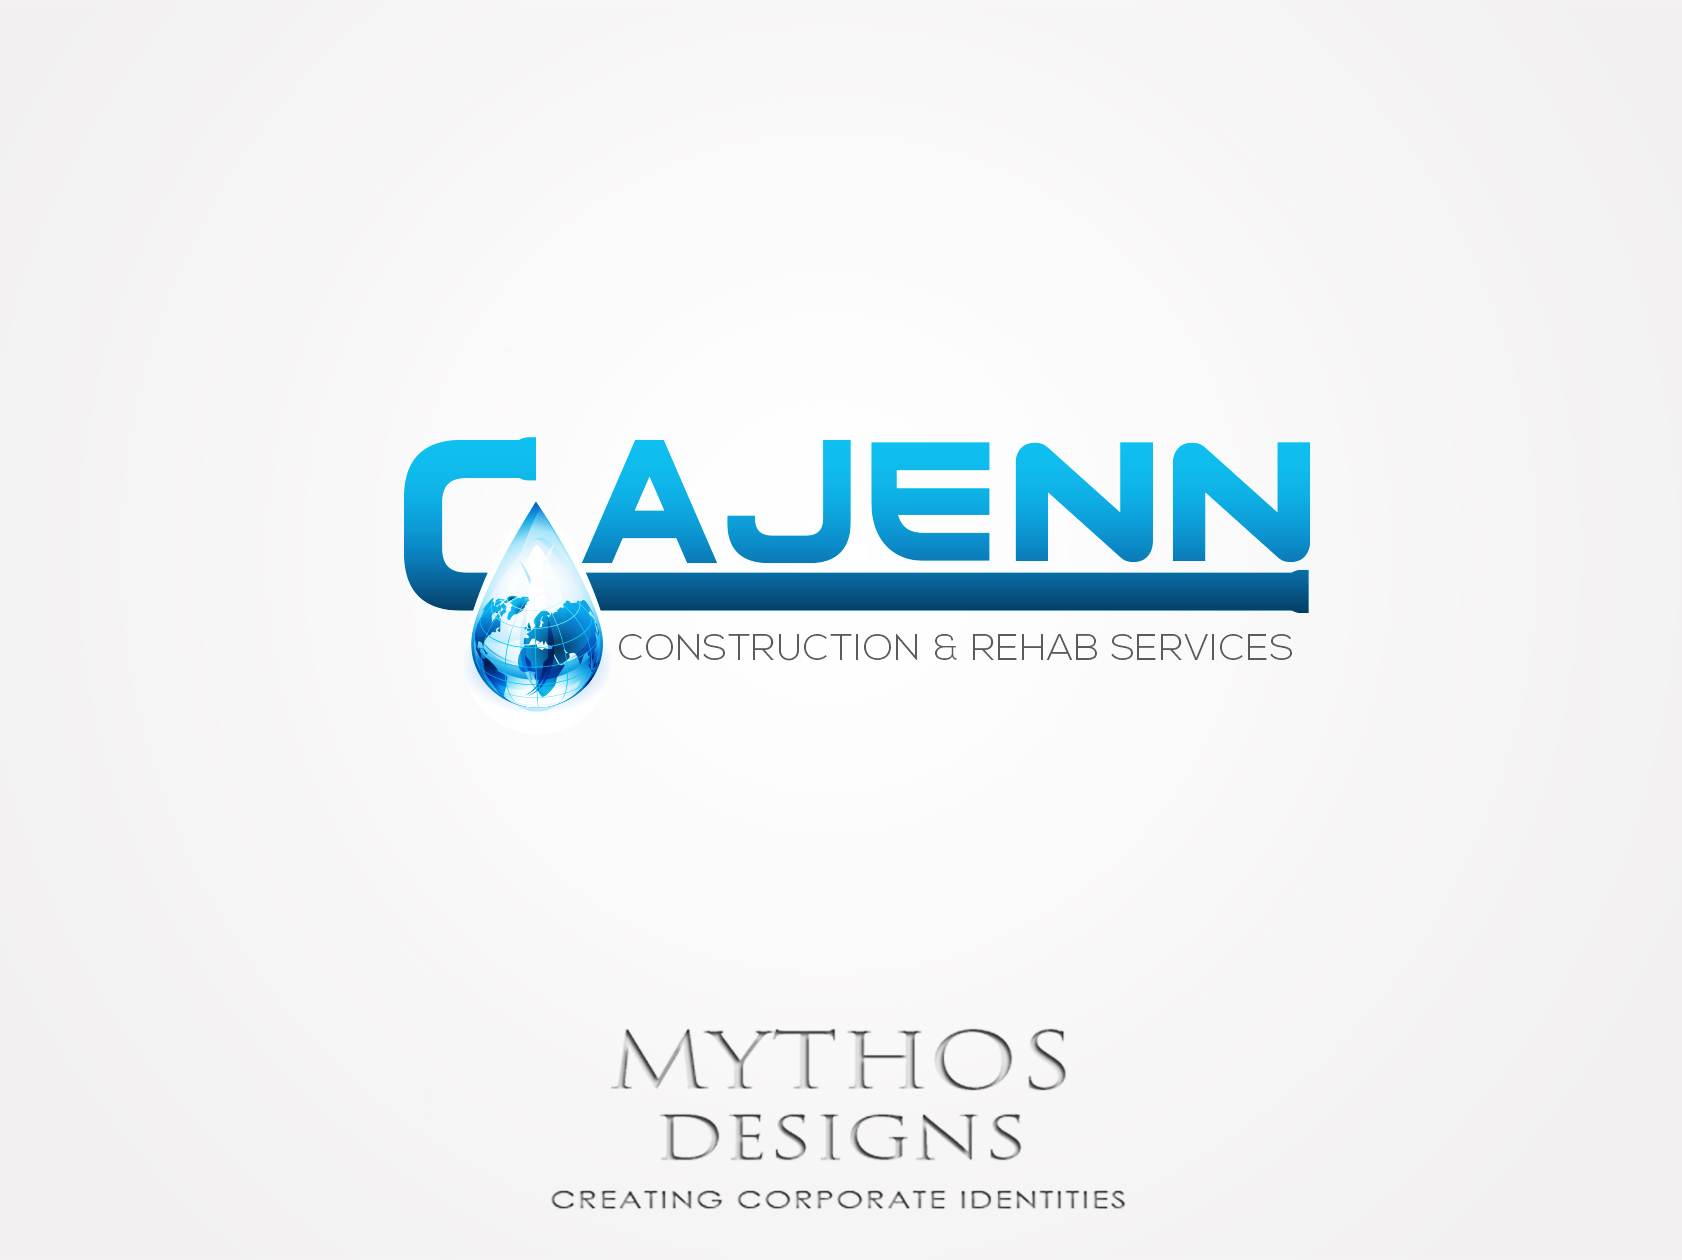 Logo Design by Mythos Designs - Entry No. 154 in the Logo Design Contest New Logo Design for CaJenn Construction & Rehab Services.